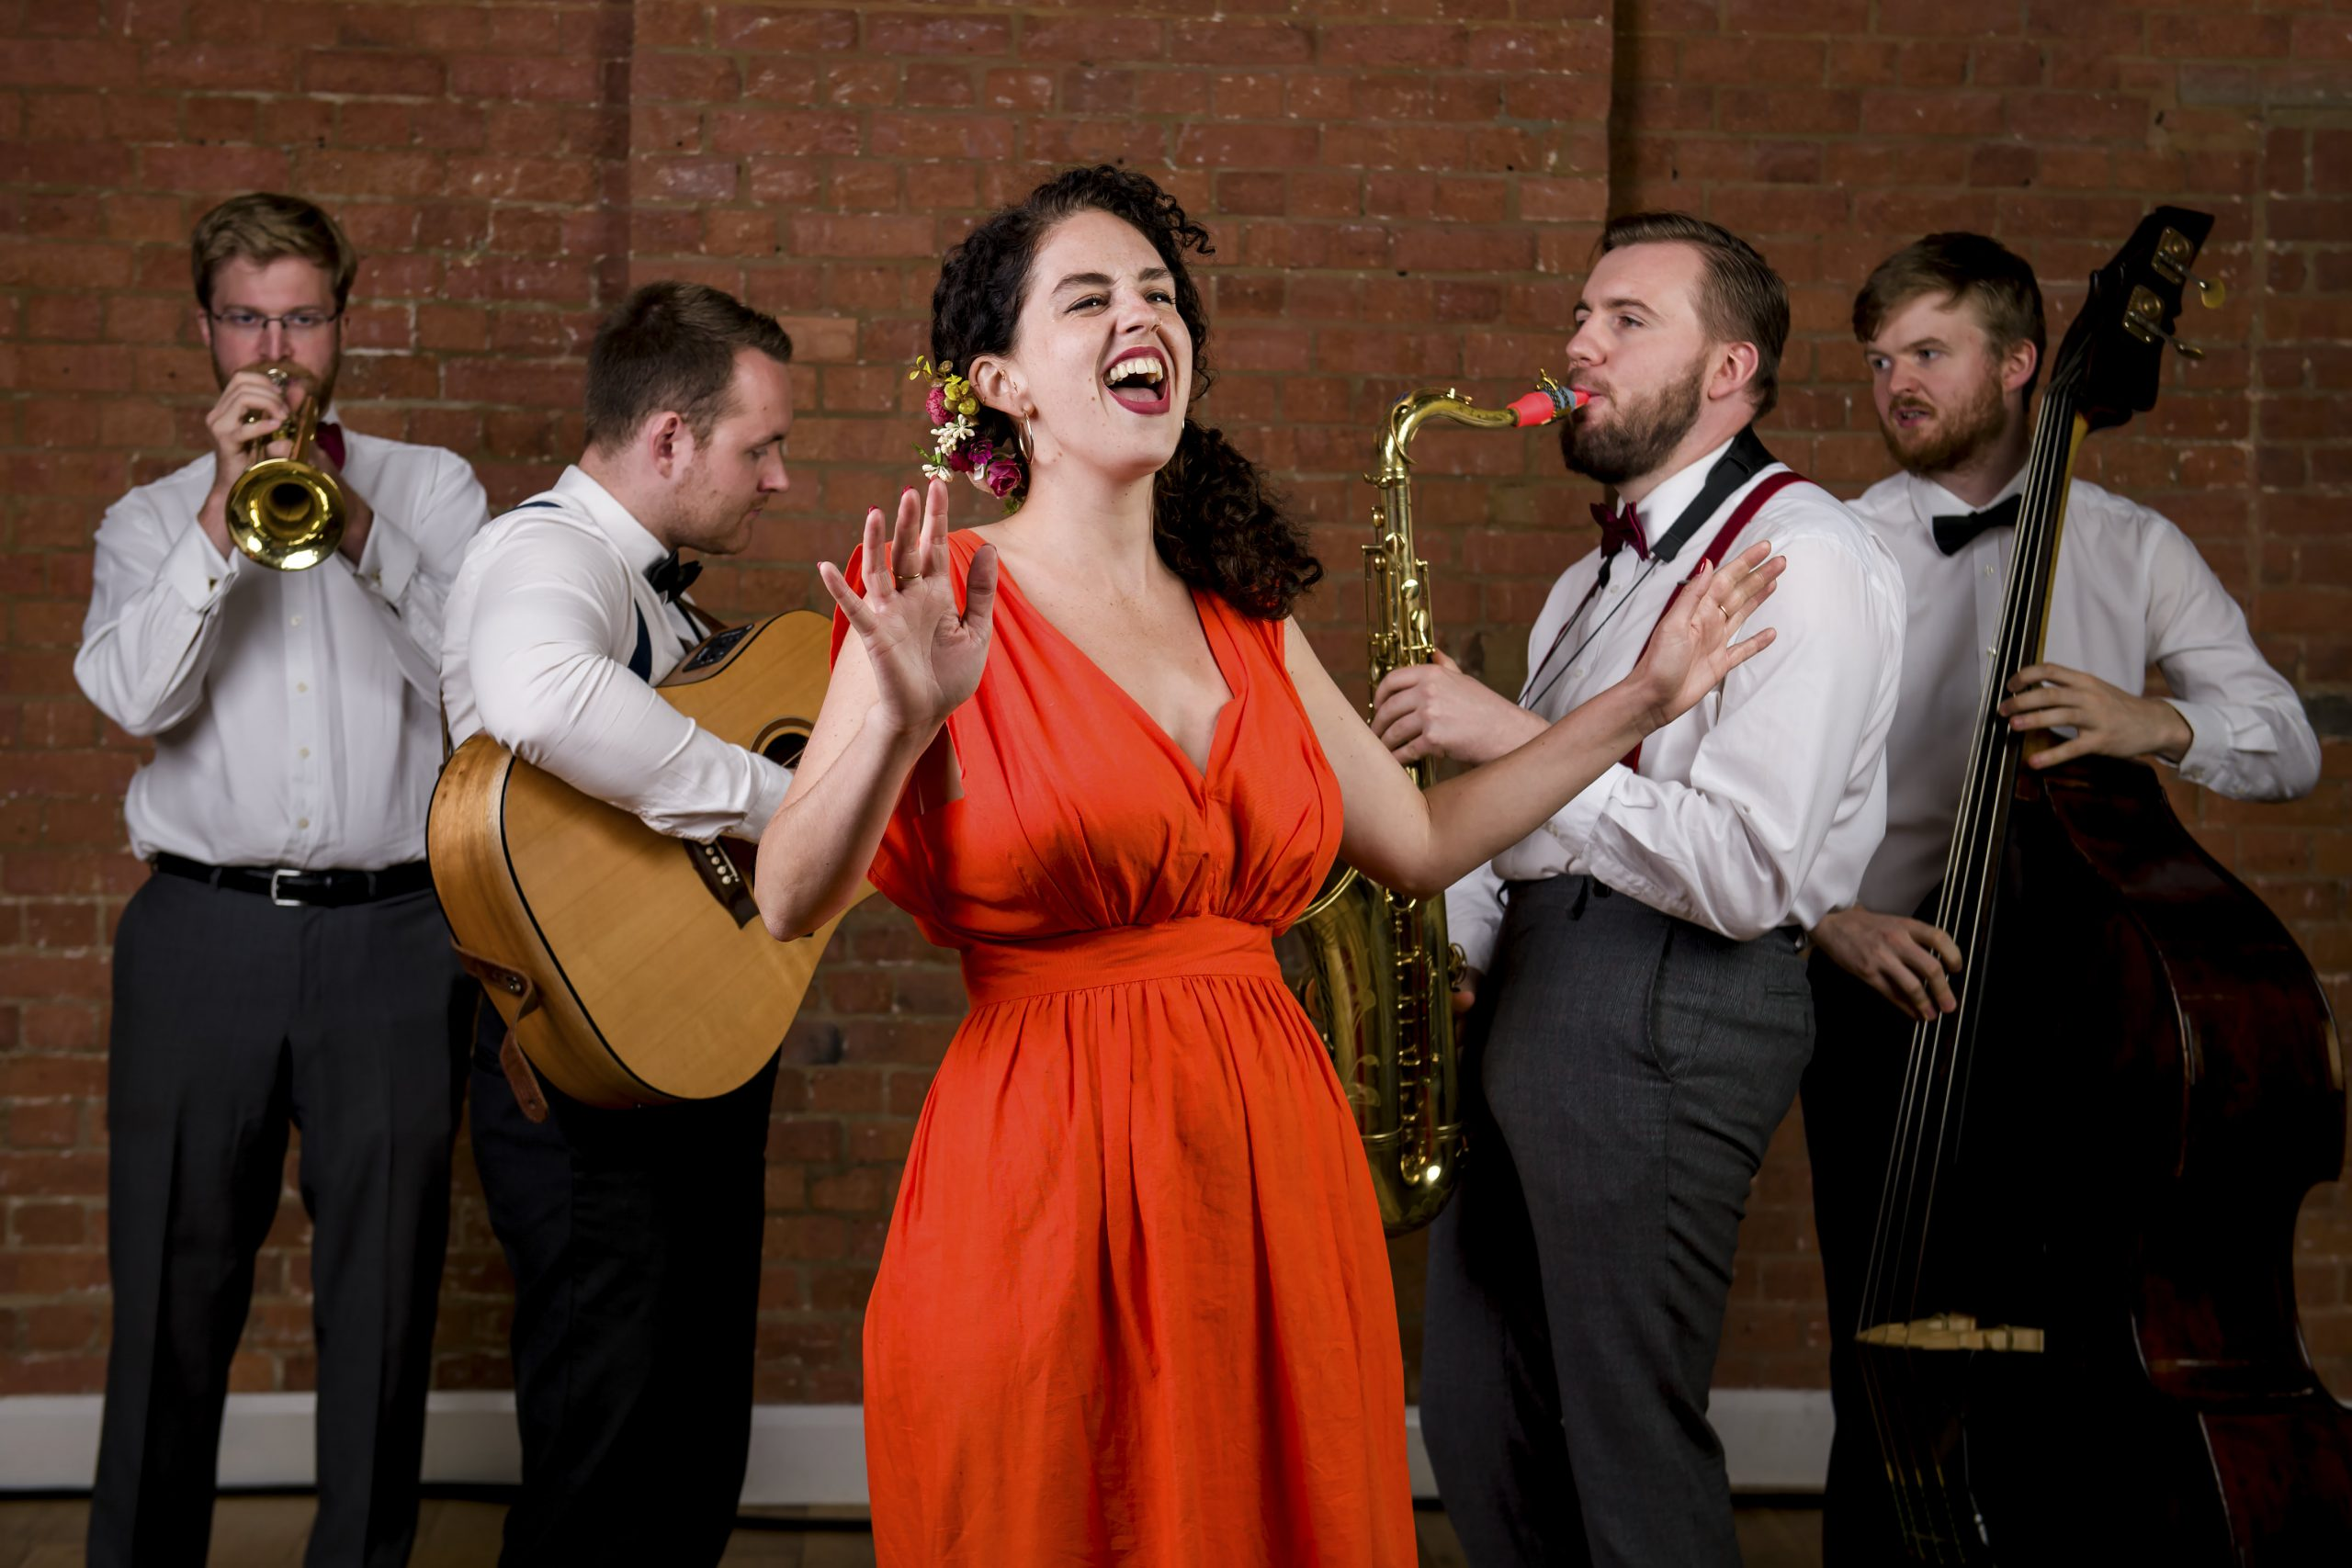 Roaming jazz band photo of guitarist, double bass player, female singer in red dress, trumpeter and saxophonist